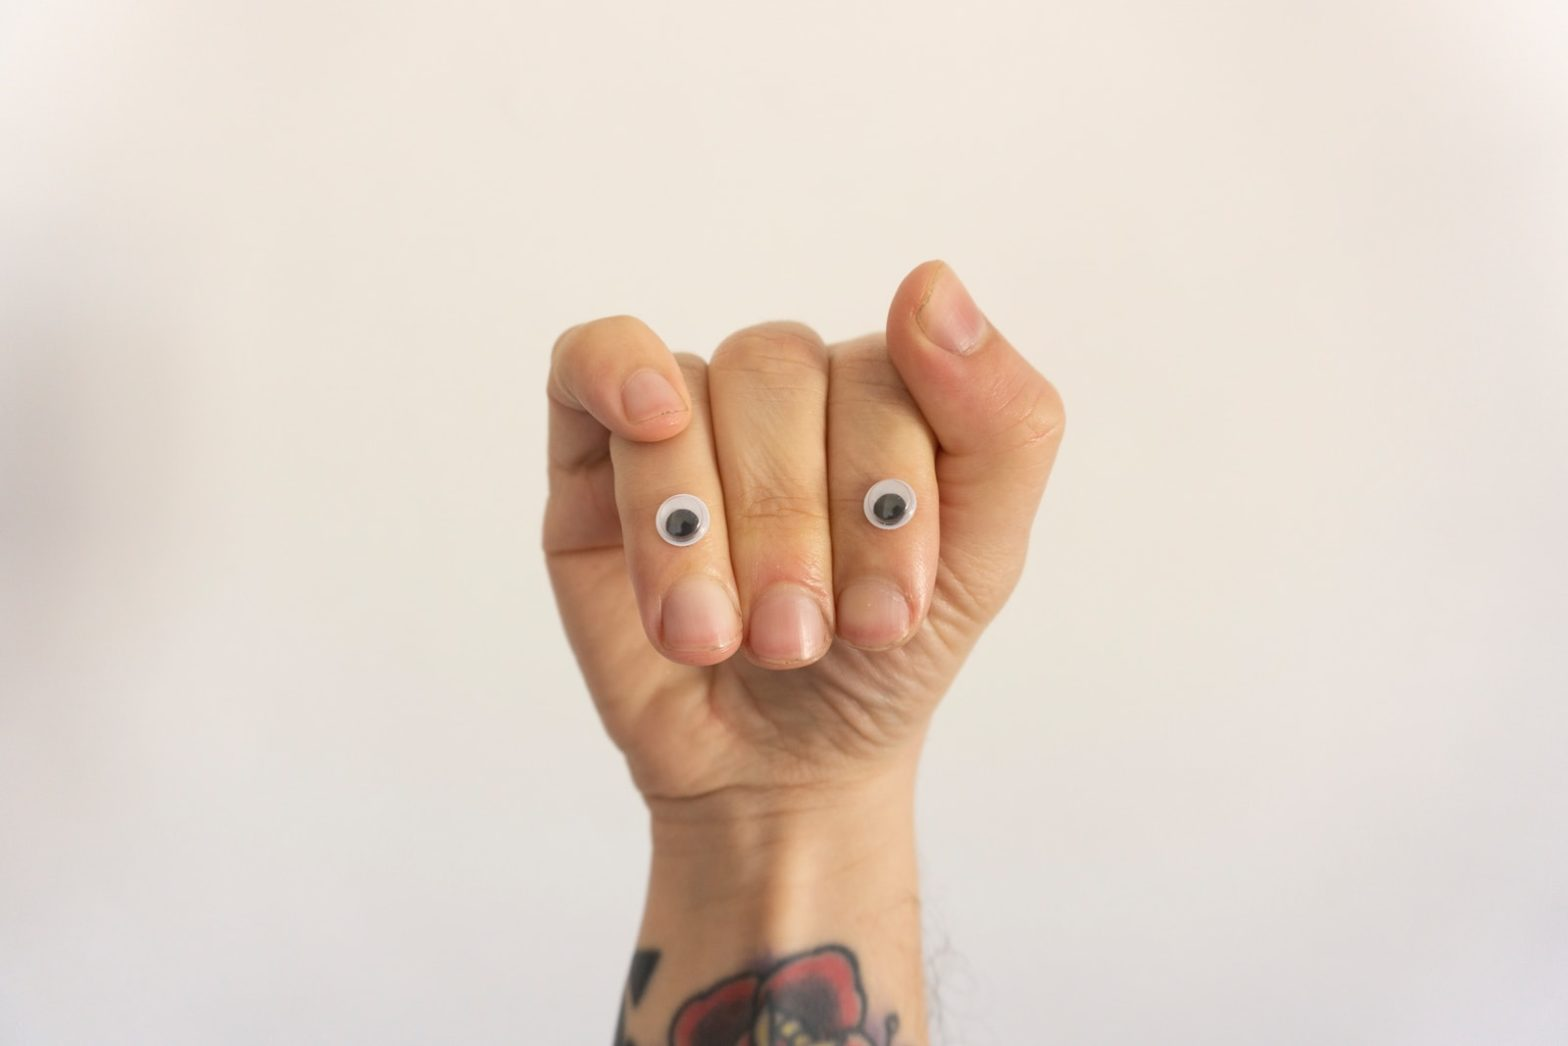 person with black and red manicure